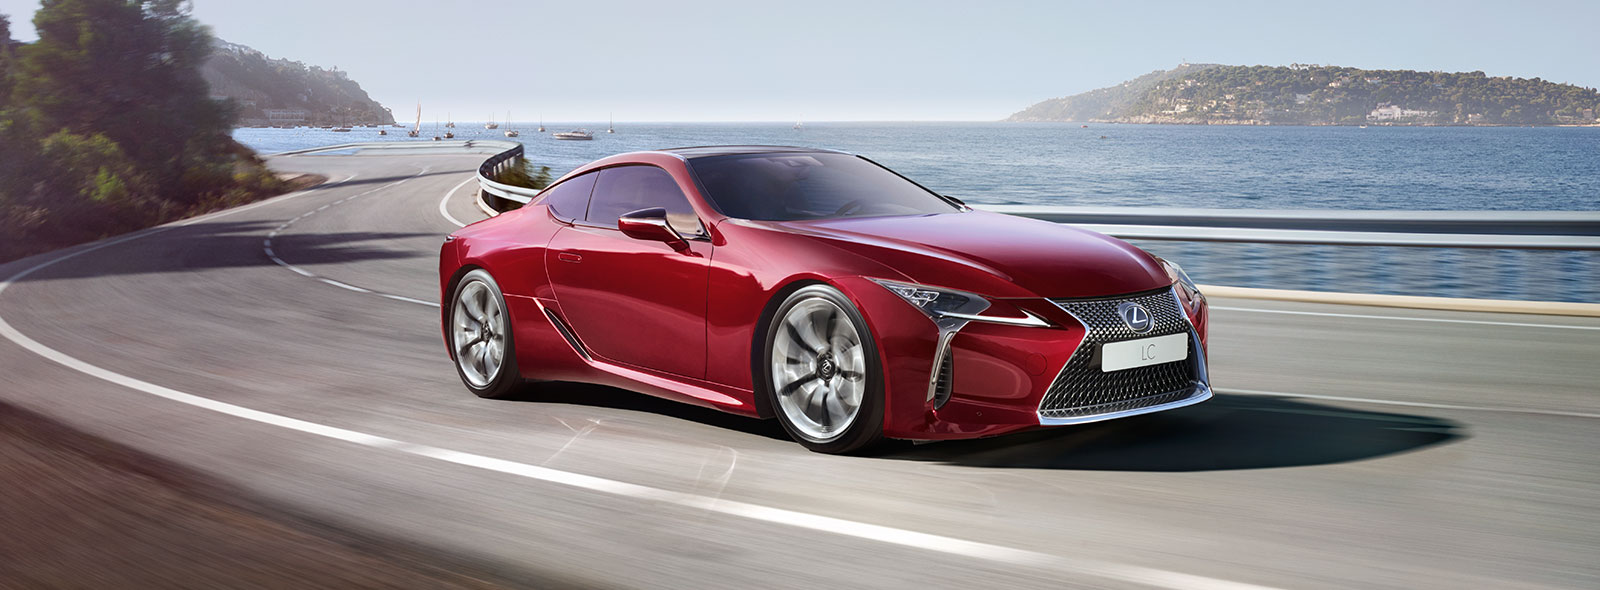 2017 Lexus LC 500 Driving Gallery 001